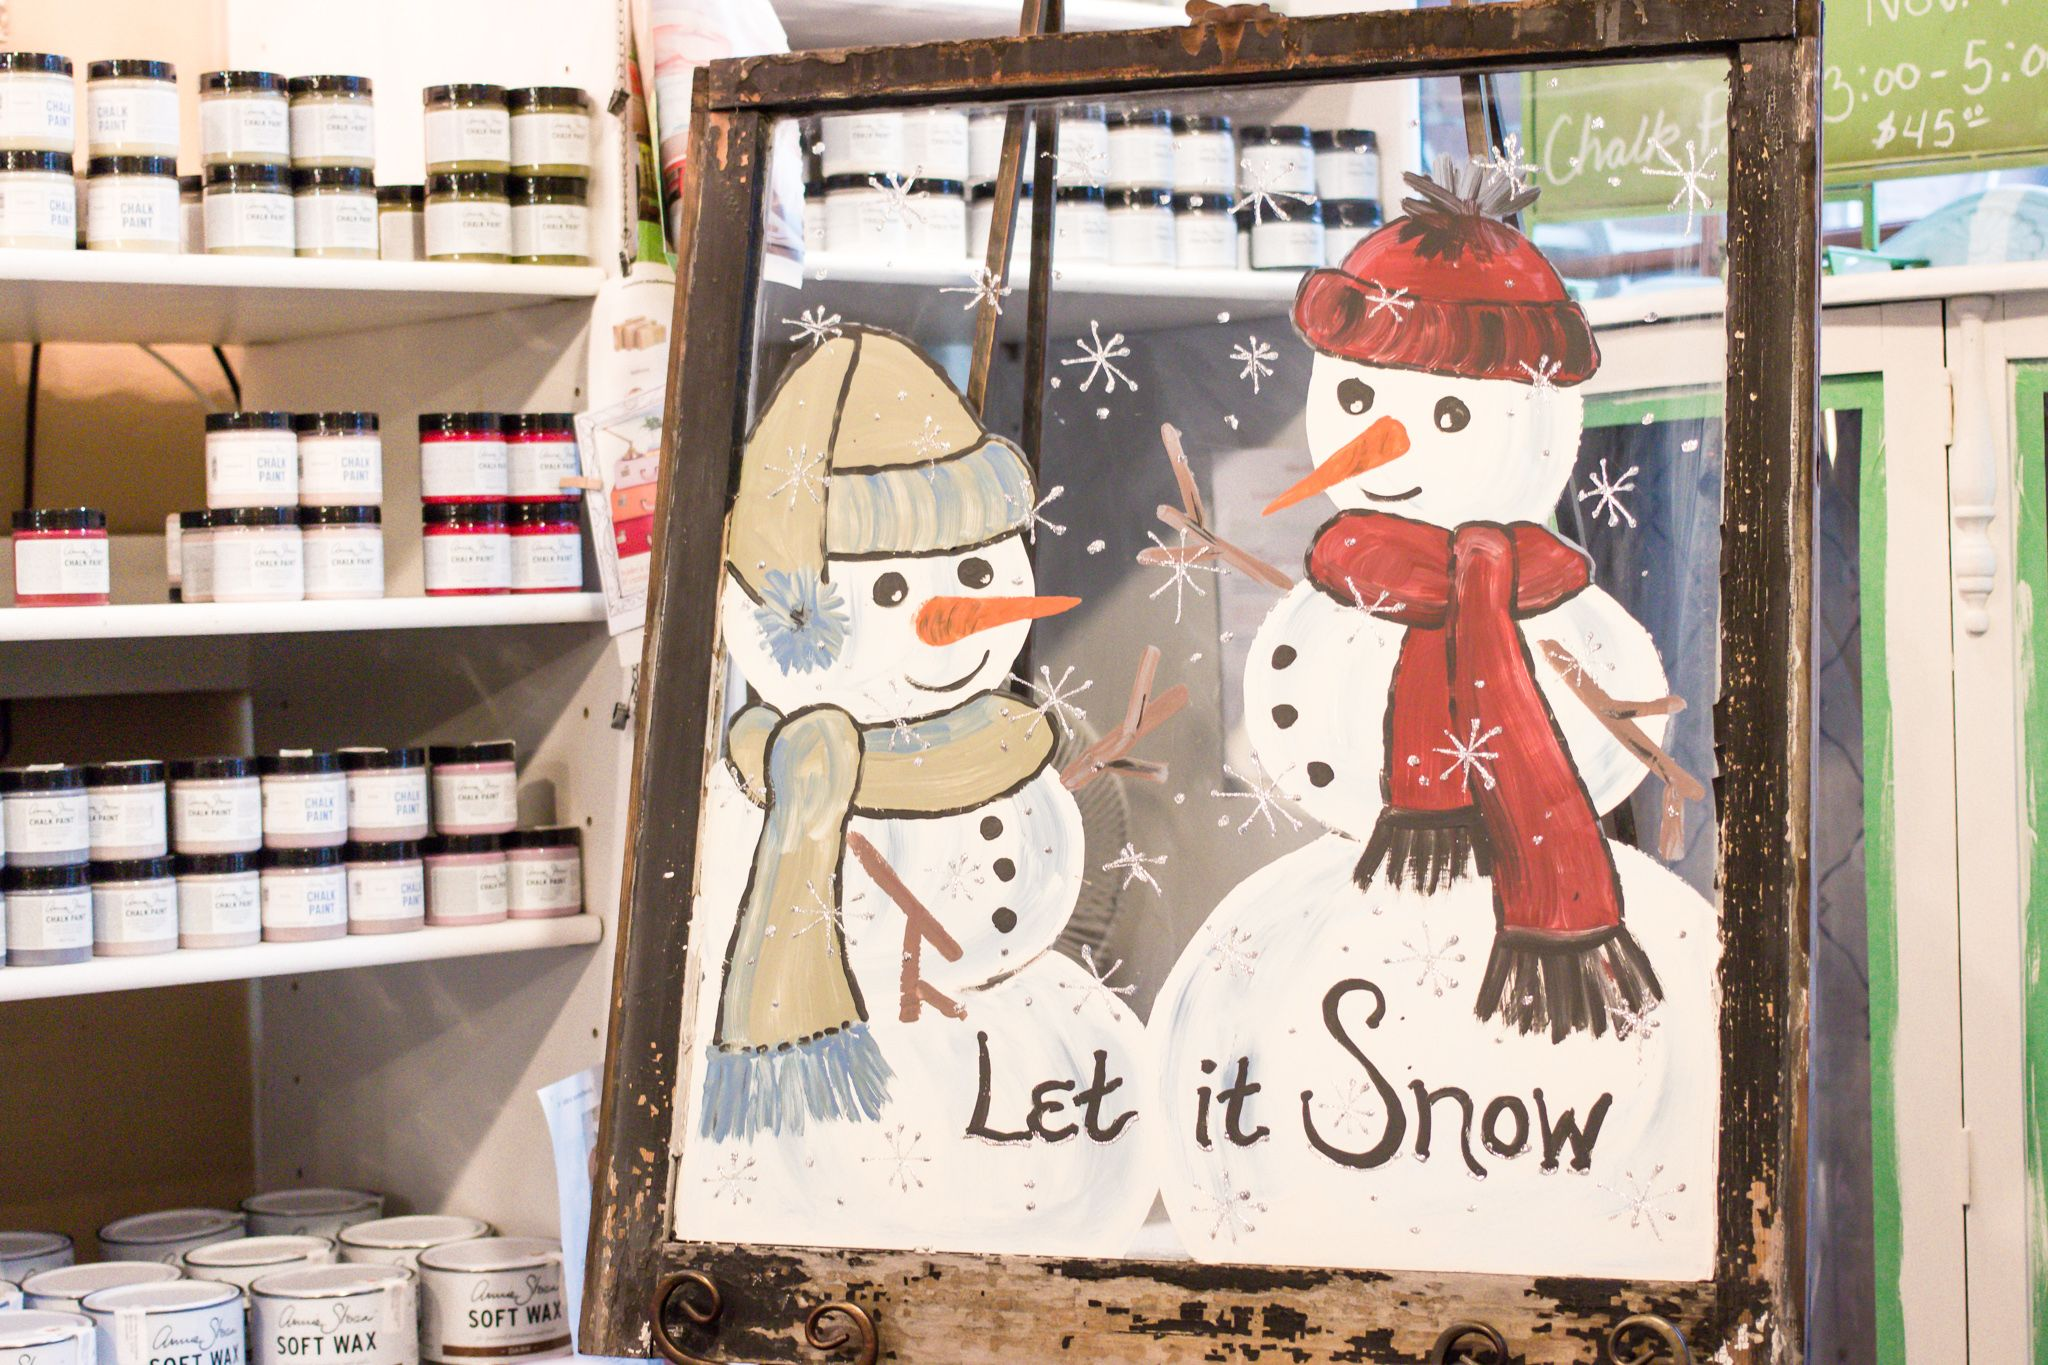 Class Alert! Special Holiday Workshop. Saturday, Nov. 7th 3:00pm-5:00pm. Guest instructed by Heidi Fields at Elly's Tea & Coffee. Window & all painting supplies are provided, $45. 18 spots left! Call to reserve your spot, 563.299.4940